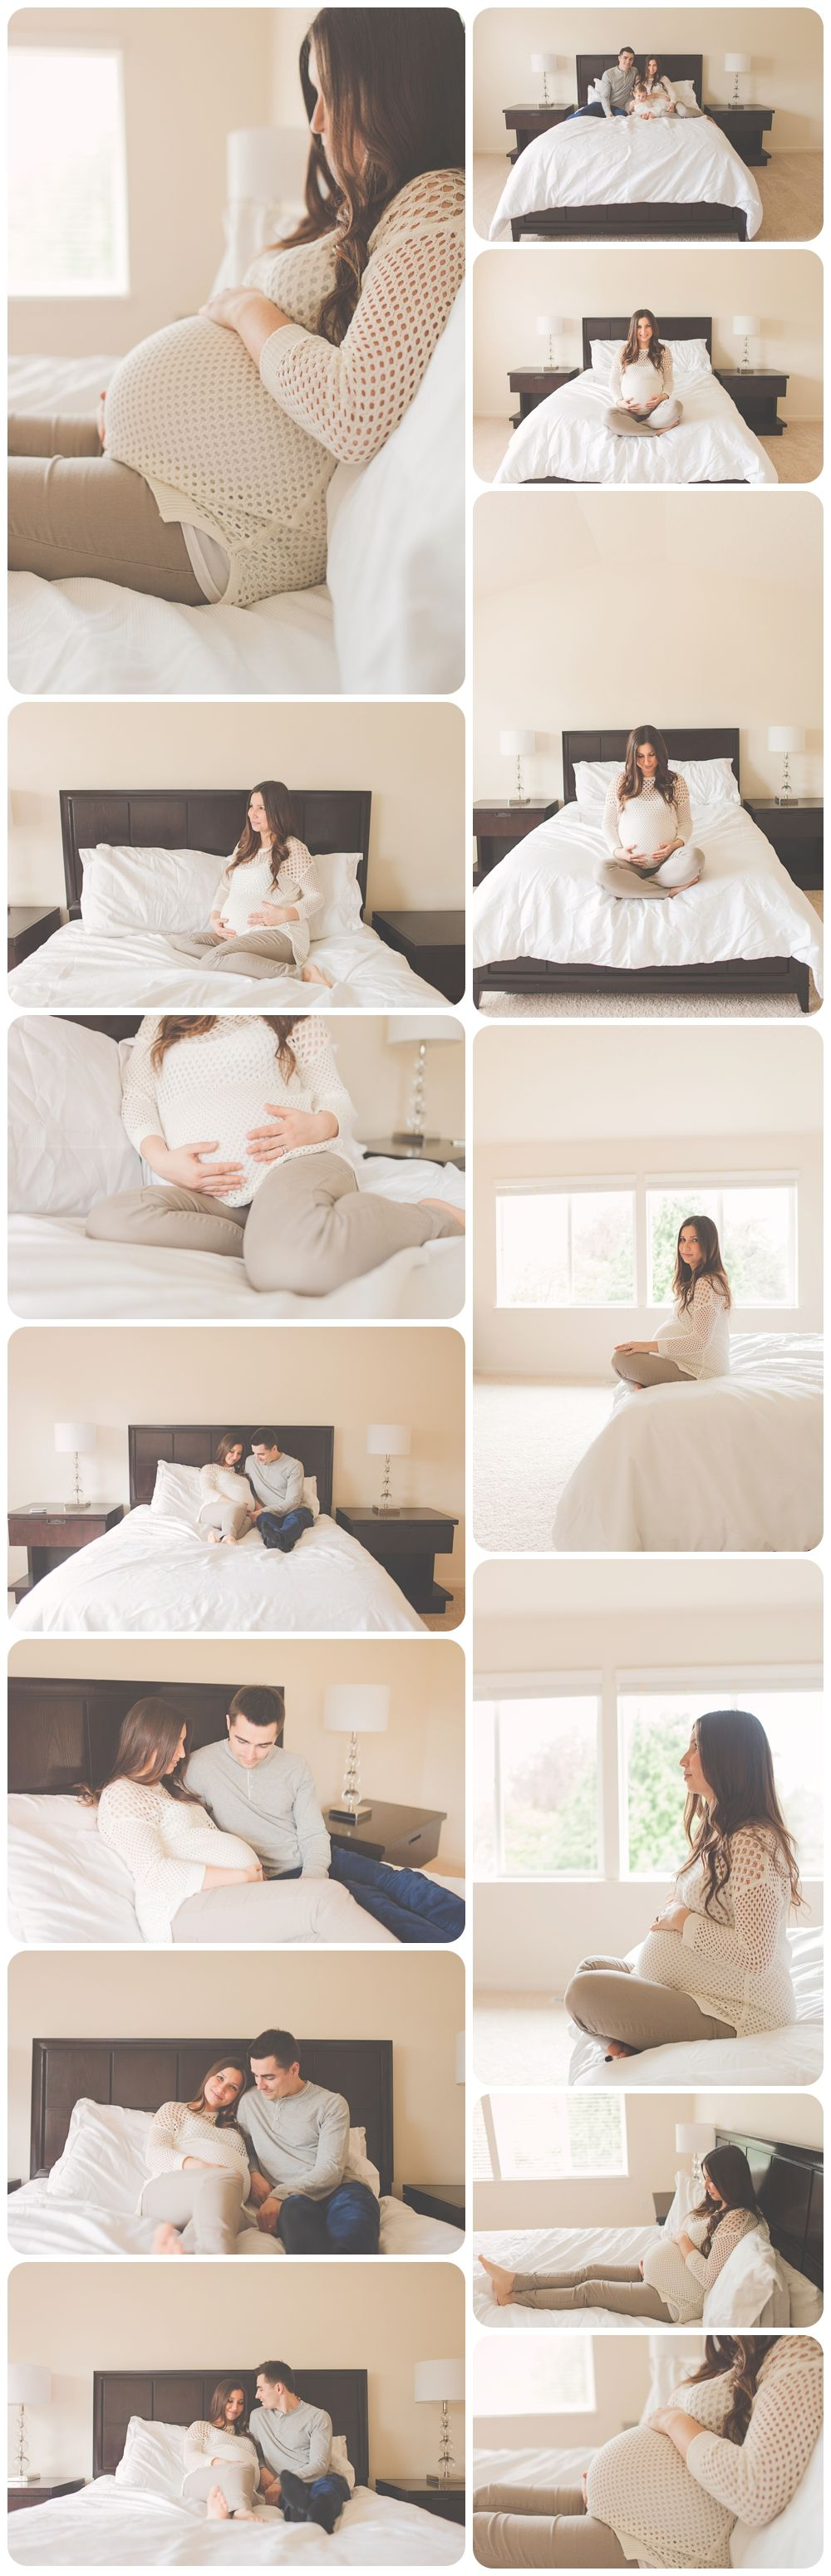 Bedroom Poses Lifestyle maternity session | Vancouver, WA & Portland, OR lifestyle photographer | Brittany Chandler Photography#lifestyle #photography #lifestylematernitysession